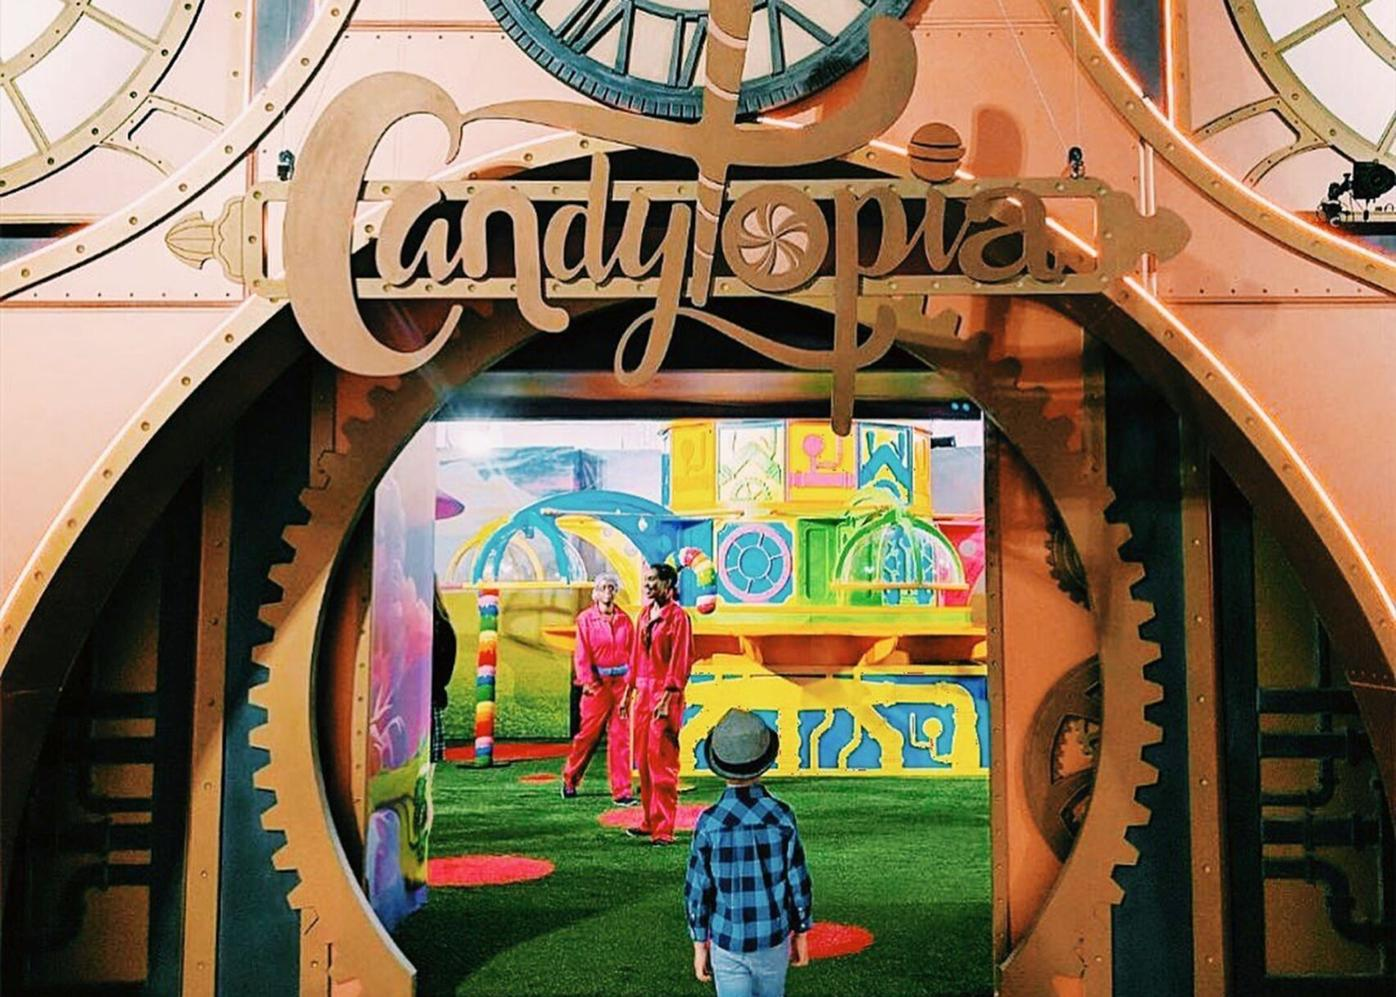 060221_MNS_Candytopia_005 Candytopia entrance